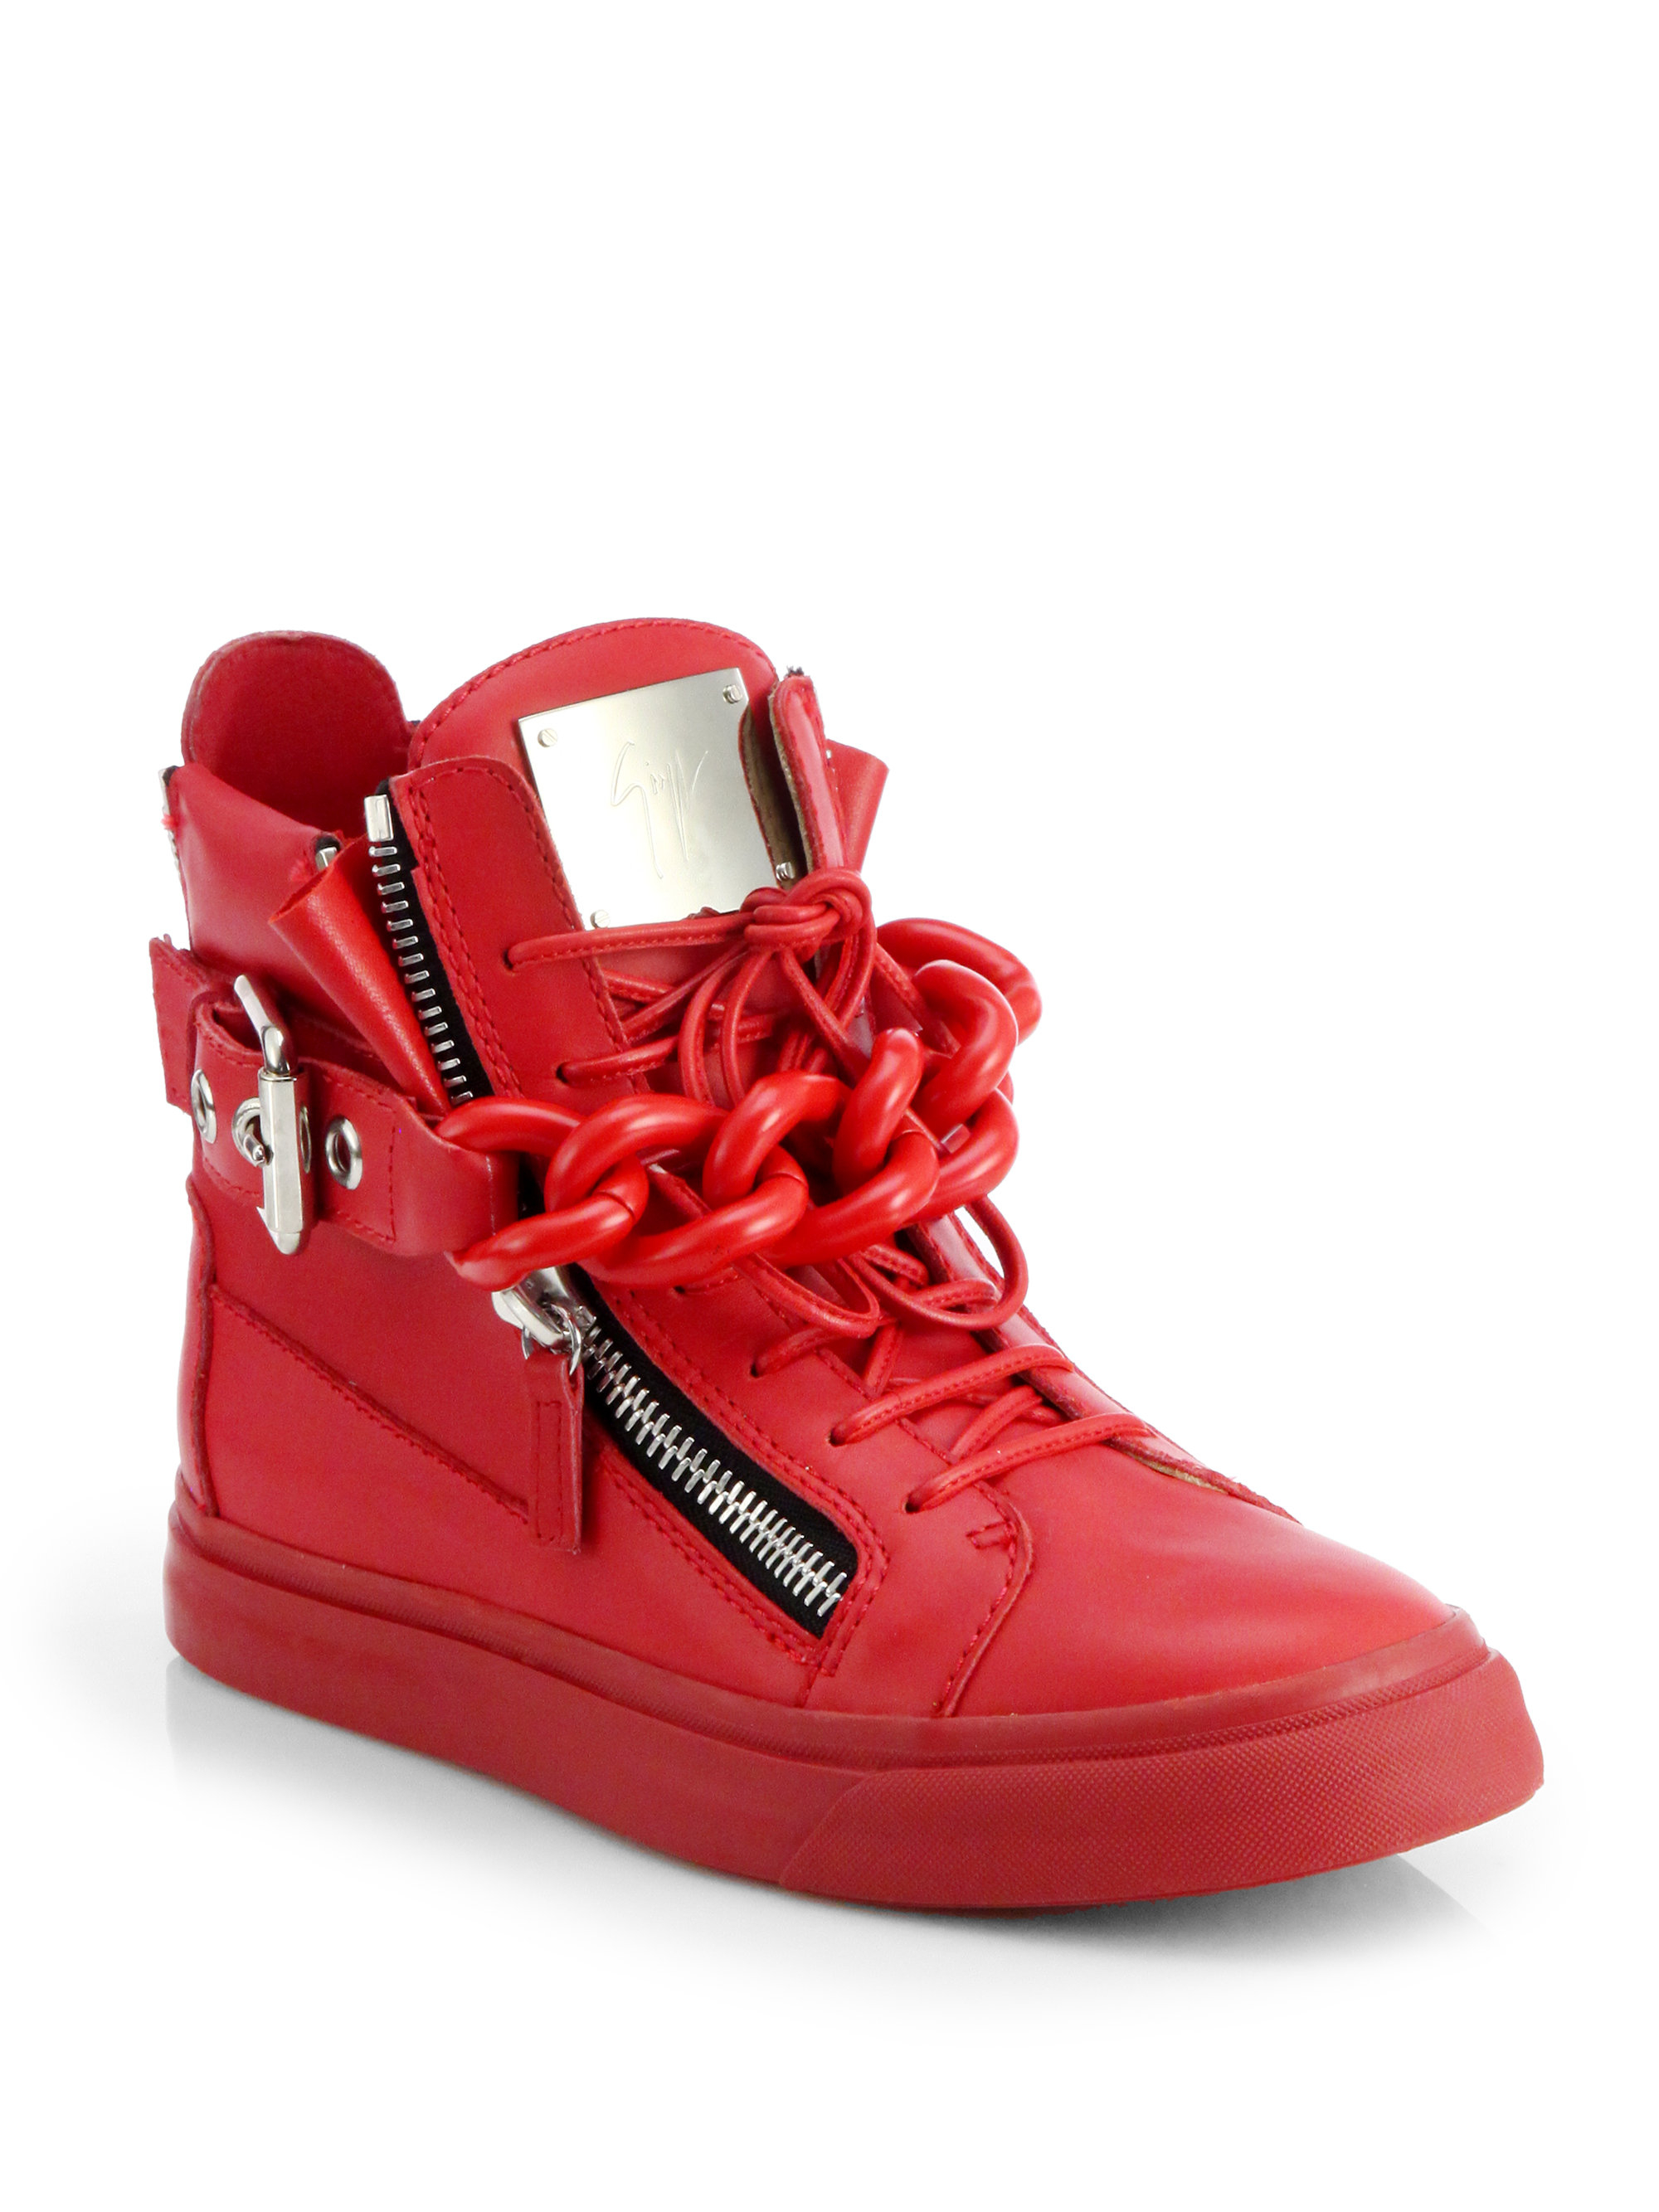 giuseppe zanotti tonal chain sneakers in red lyst. Black Bedroom Furniture Sets. Home Design Ideas